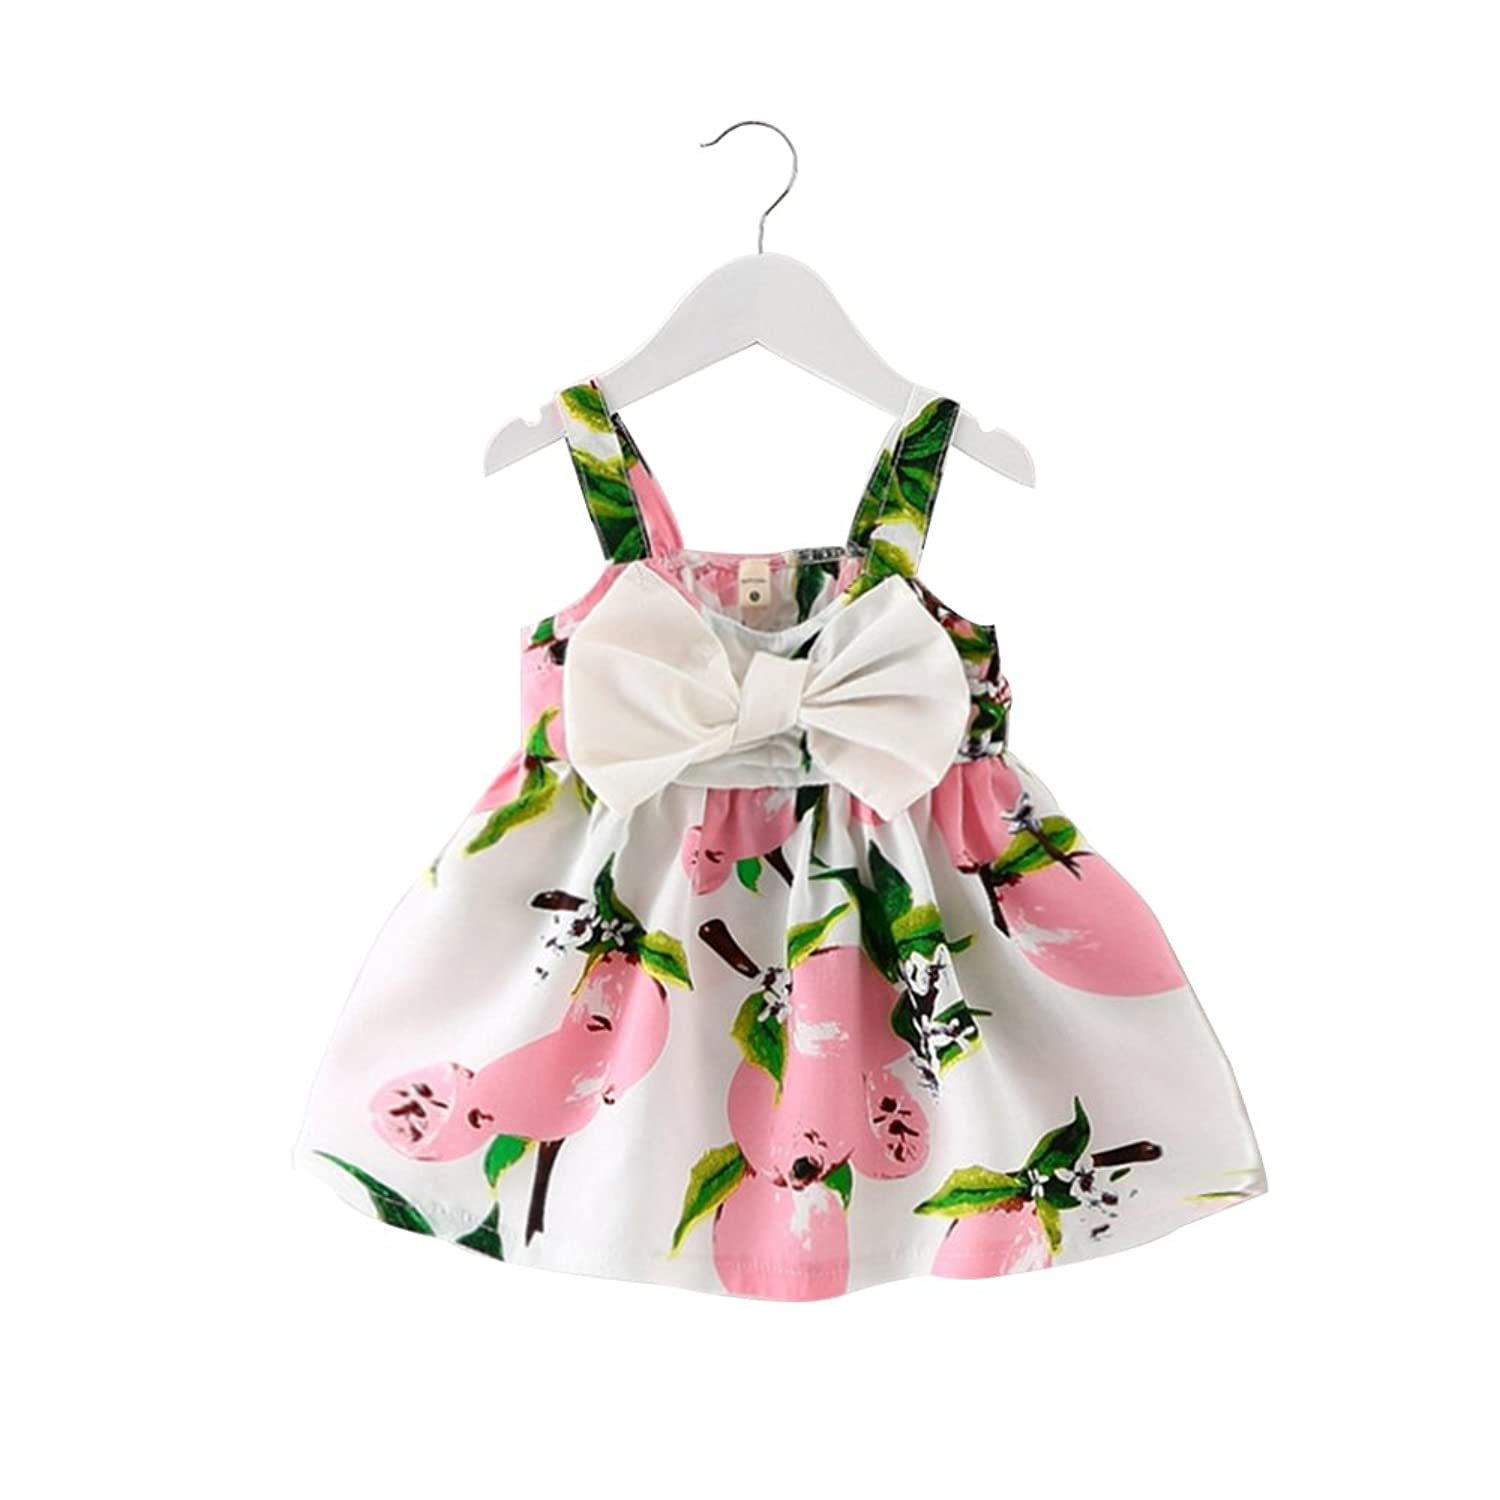 Baby Girls Toddler Princess Skirt Party Dress Kids Summer Tutu Clothes Fit1-6Y